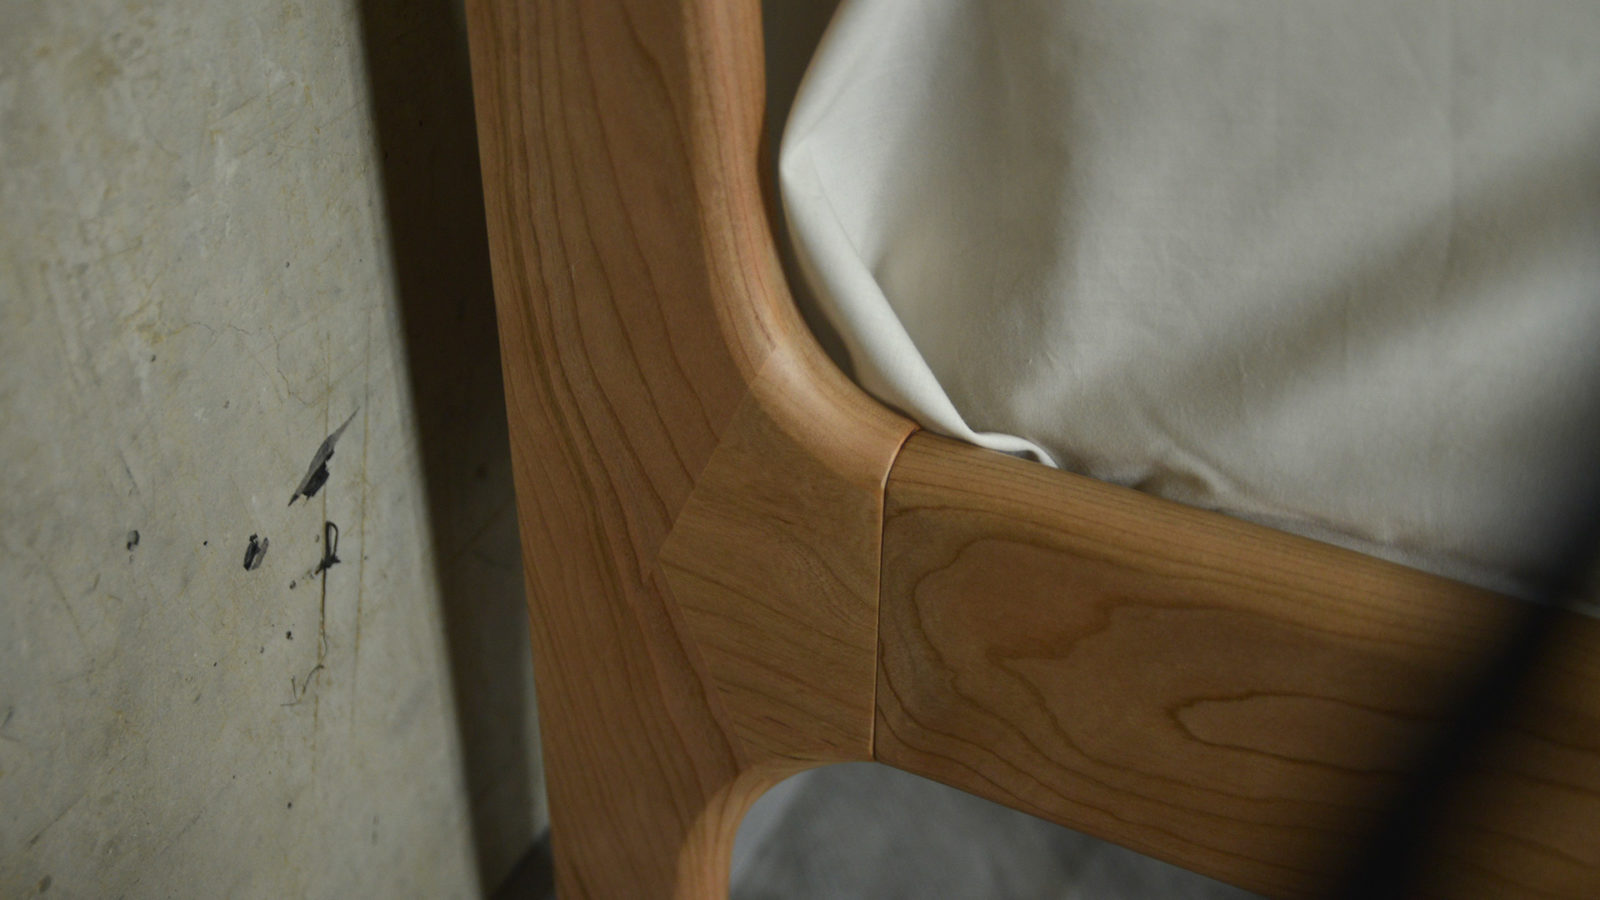 Camden & Pimlico solid wooden bed - a detail view of the headboard leg joint